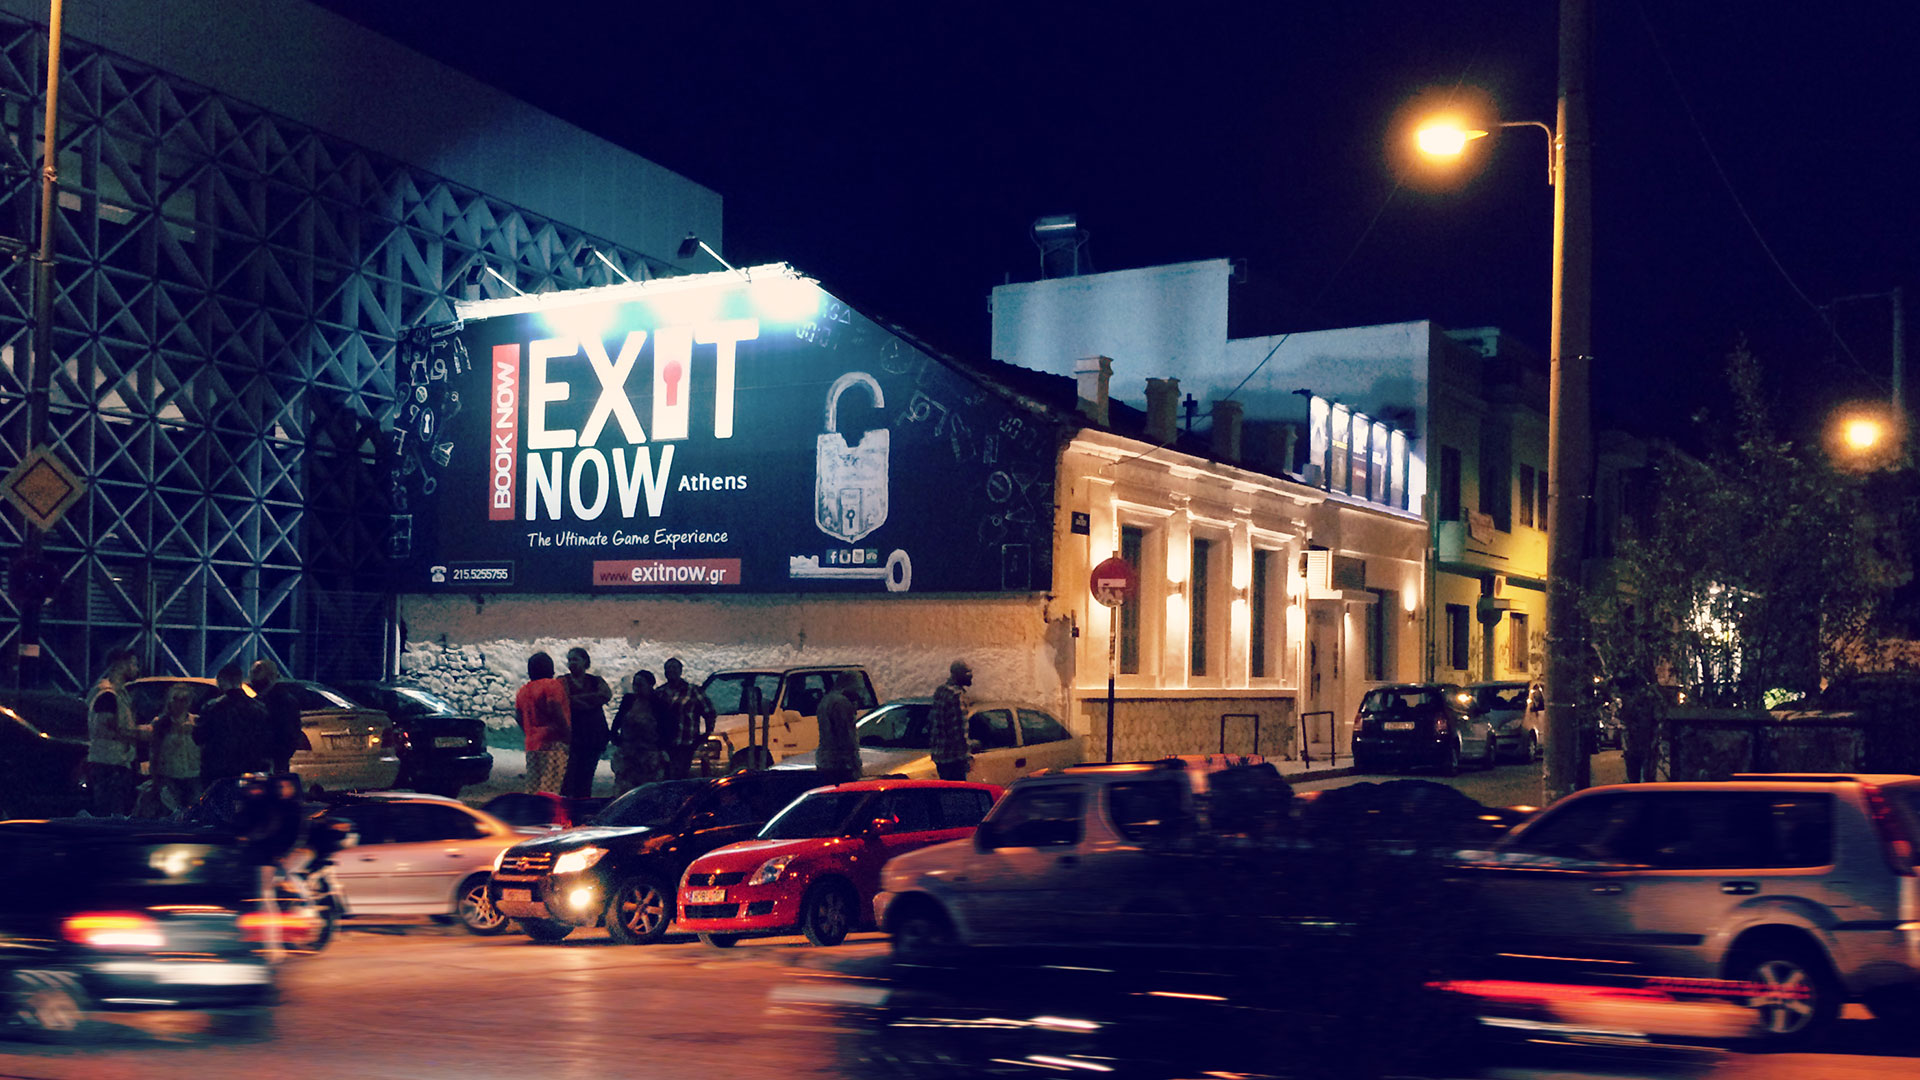 EXITNOW Iakxou5 Athens | EXIT NOW | Live Game Experience | Escape Room | Services